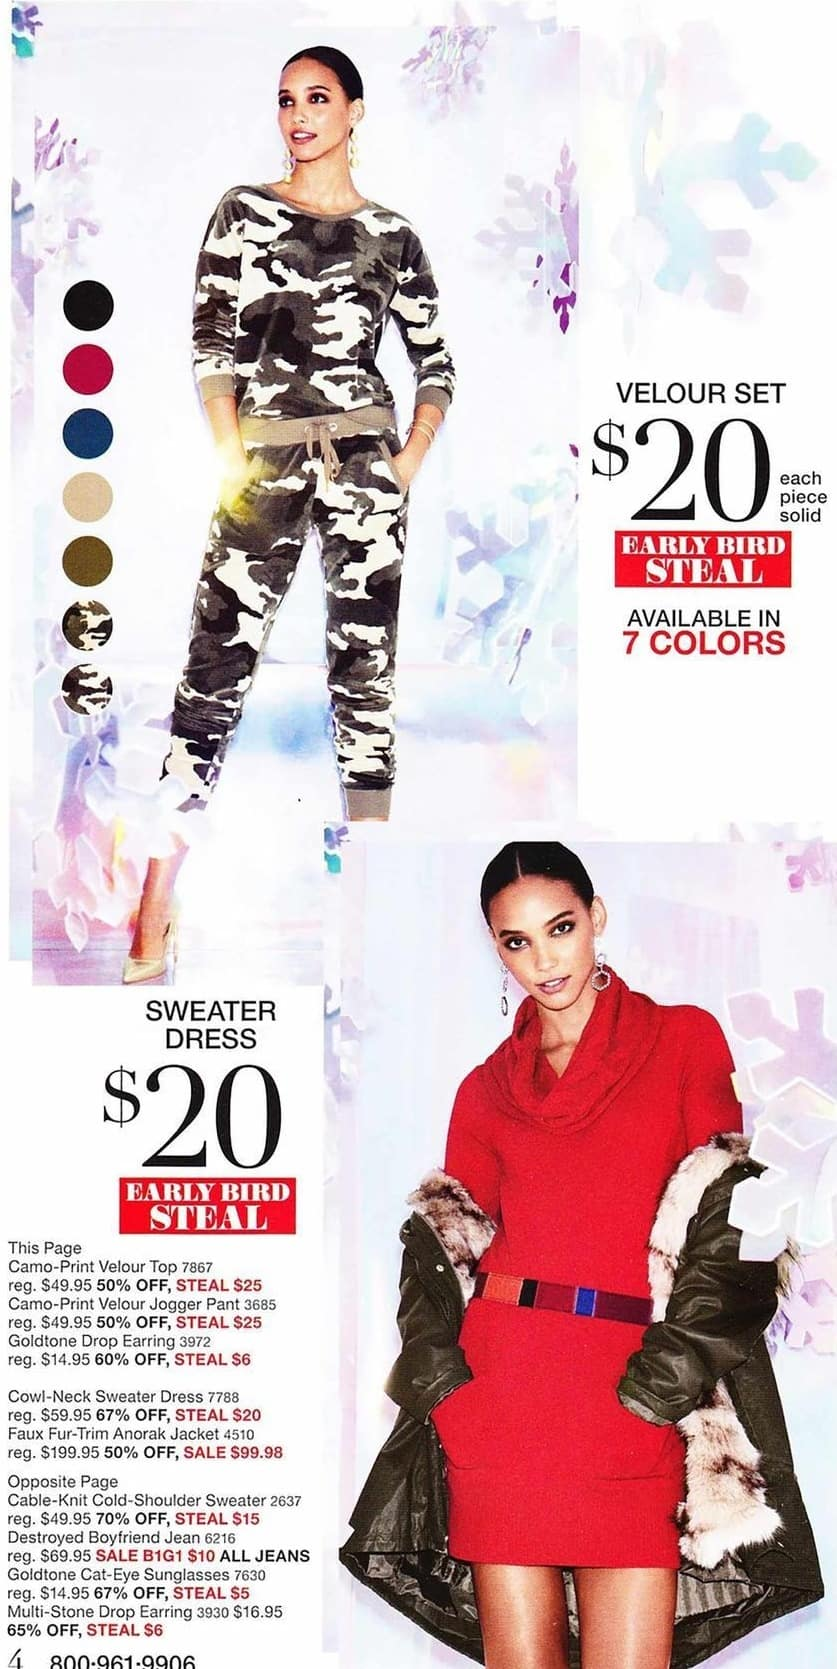 New York and Company Black Friday: Women's Camo-Print Velour Top or Pants for $25.00